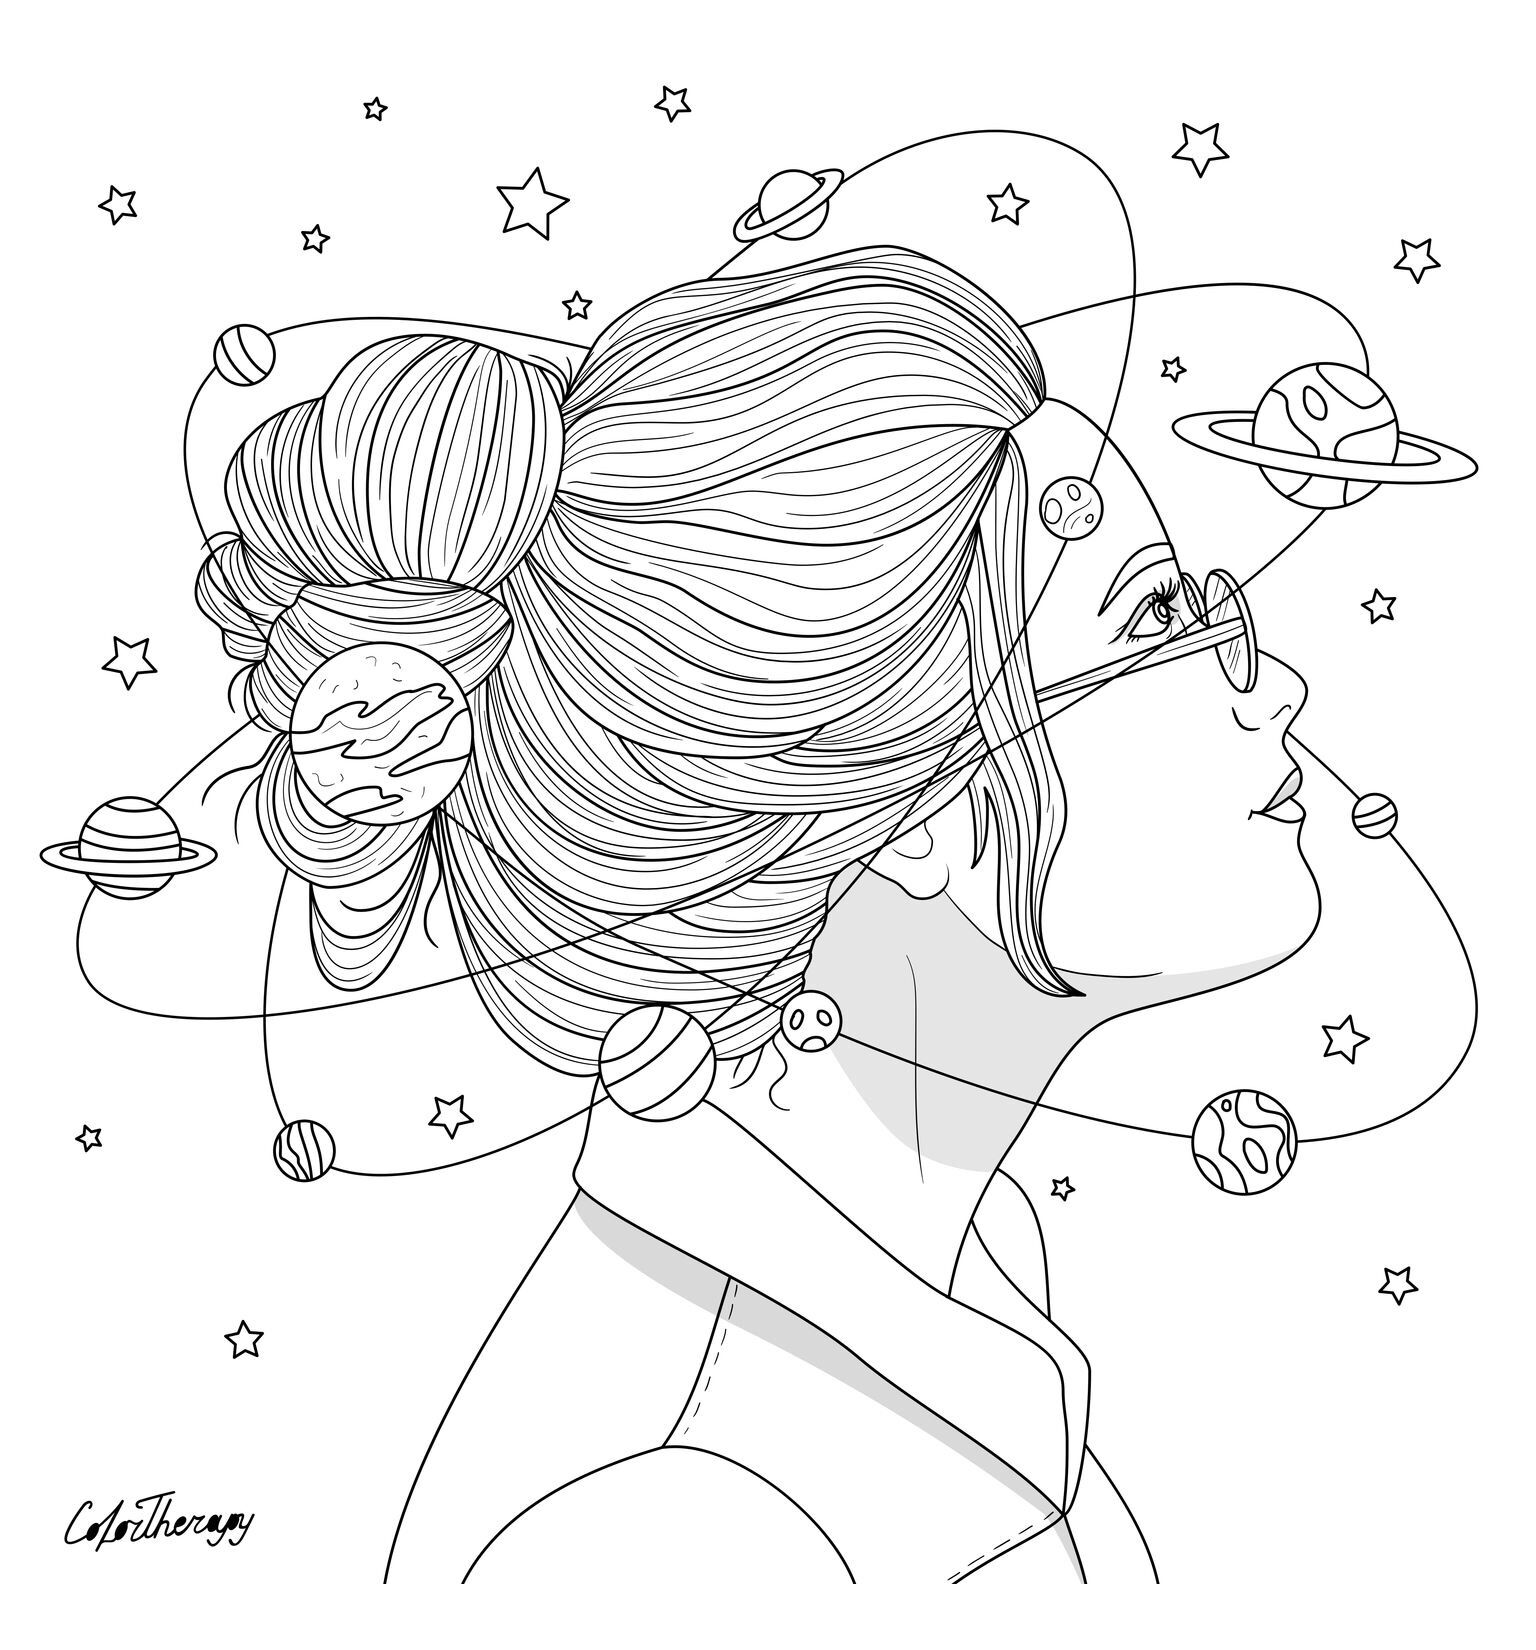 Coloring pages for adults app ~ Pin by Color Therapy App on Gift Of The Day #GOTD | Color ...